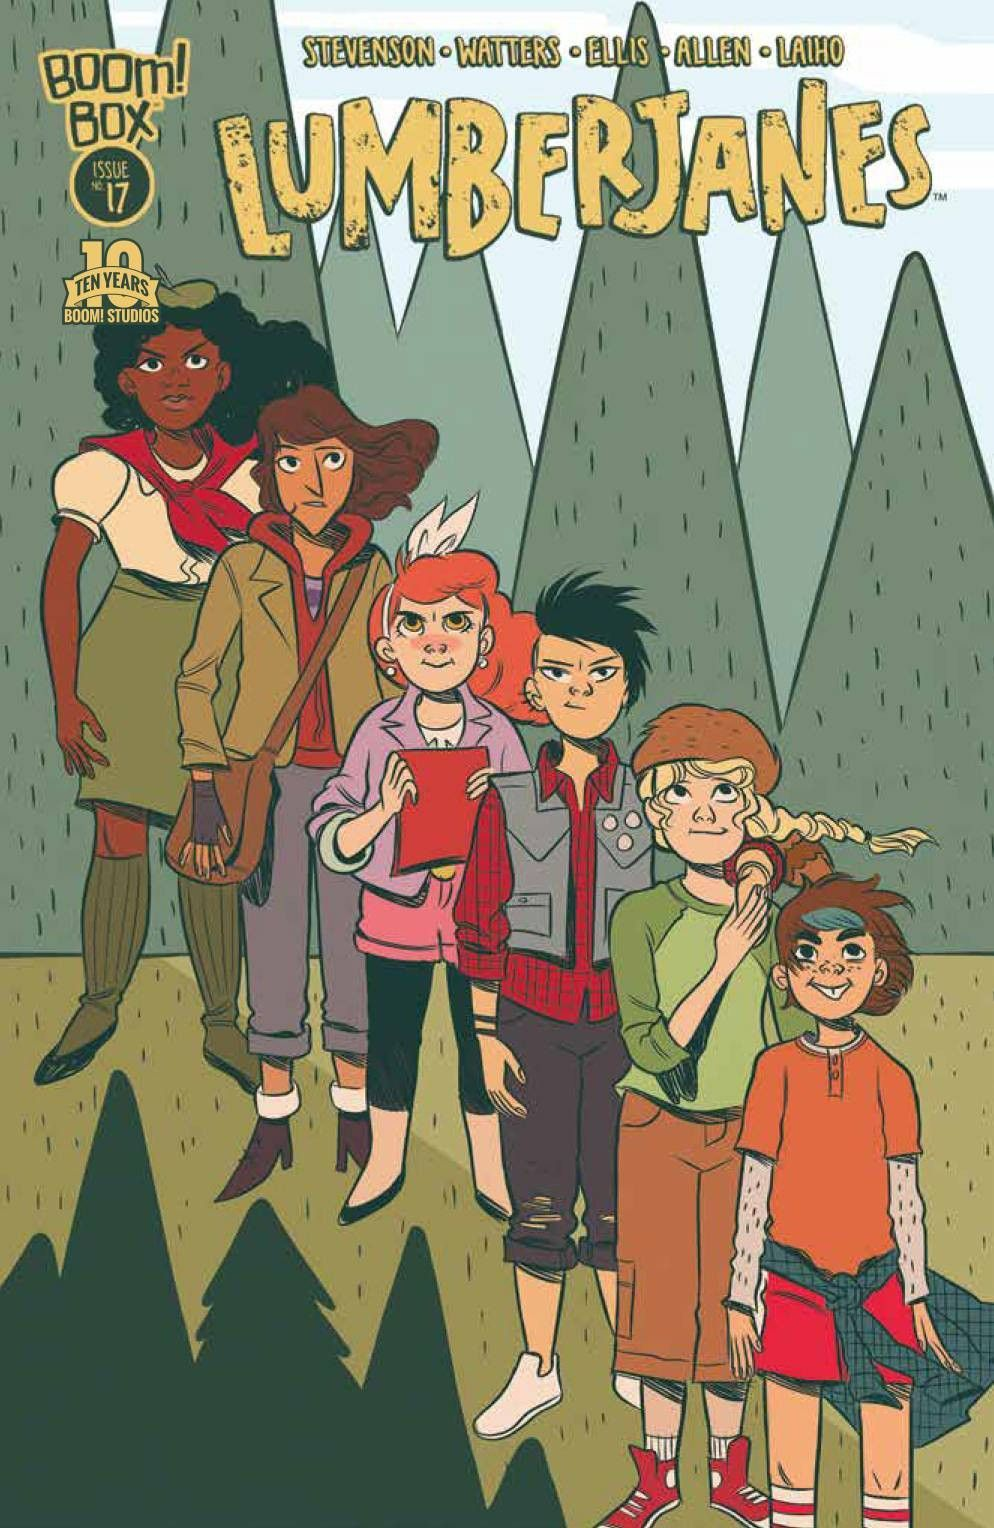 Lumberjanes (2014) Issue 17 Comics, Cute comics